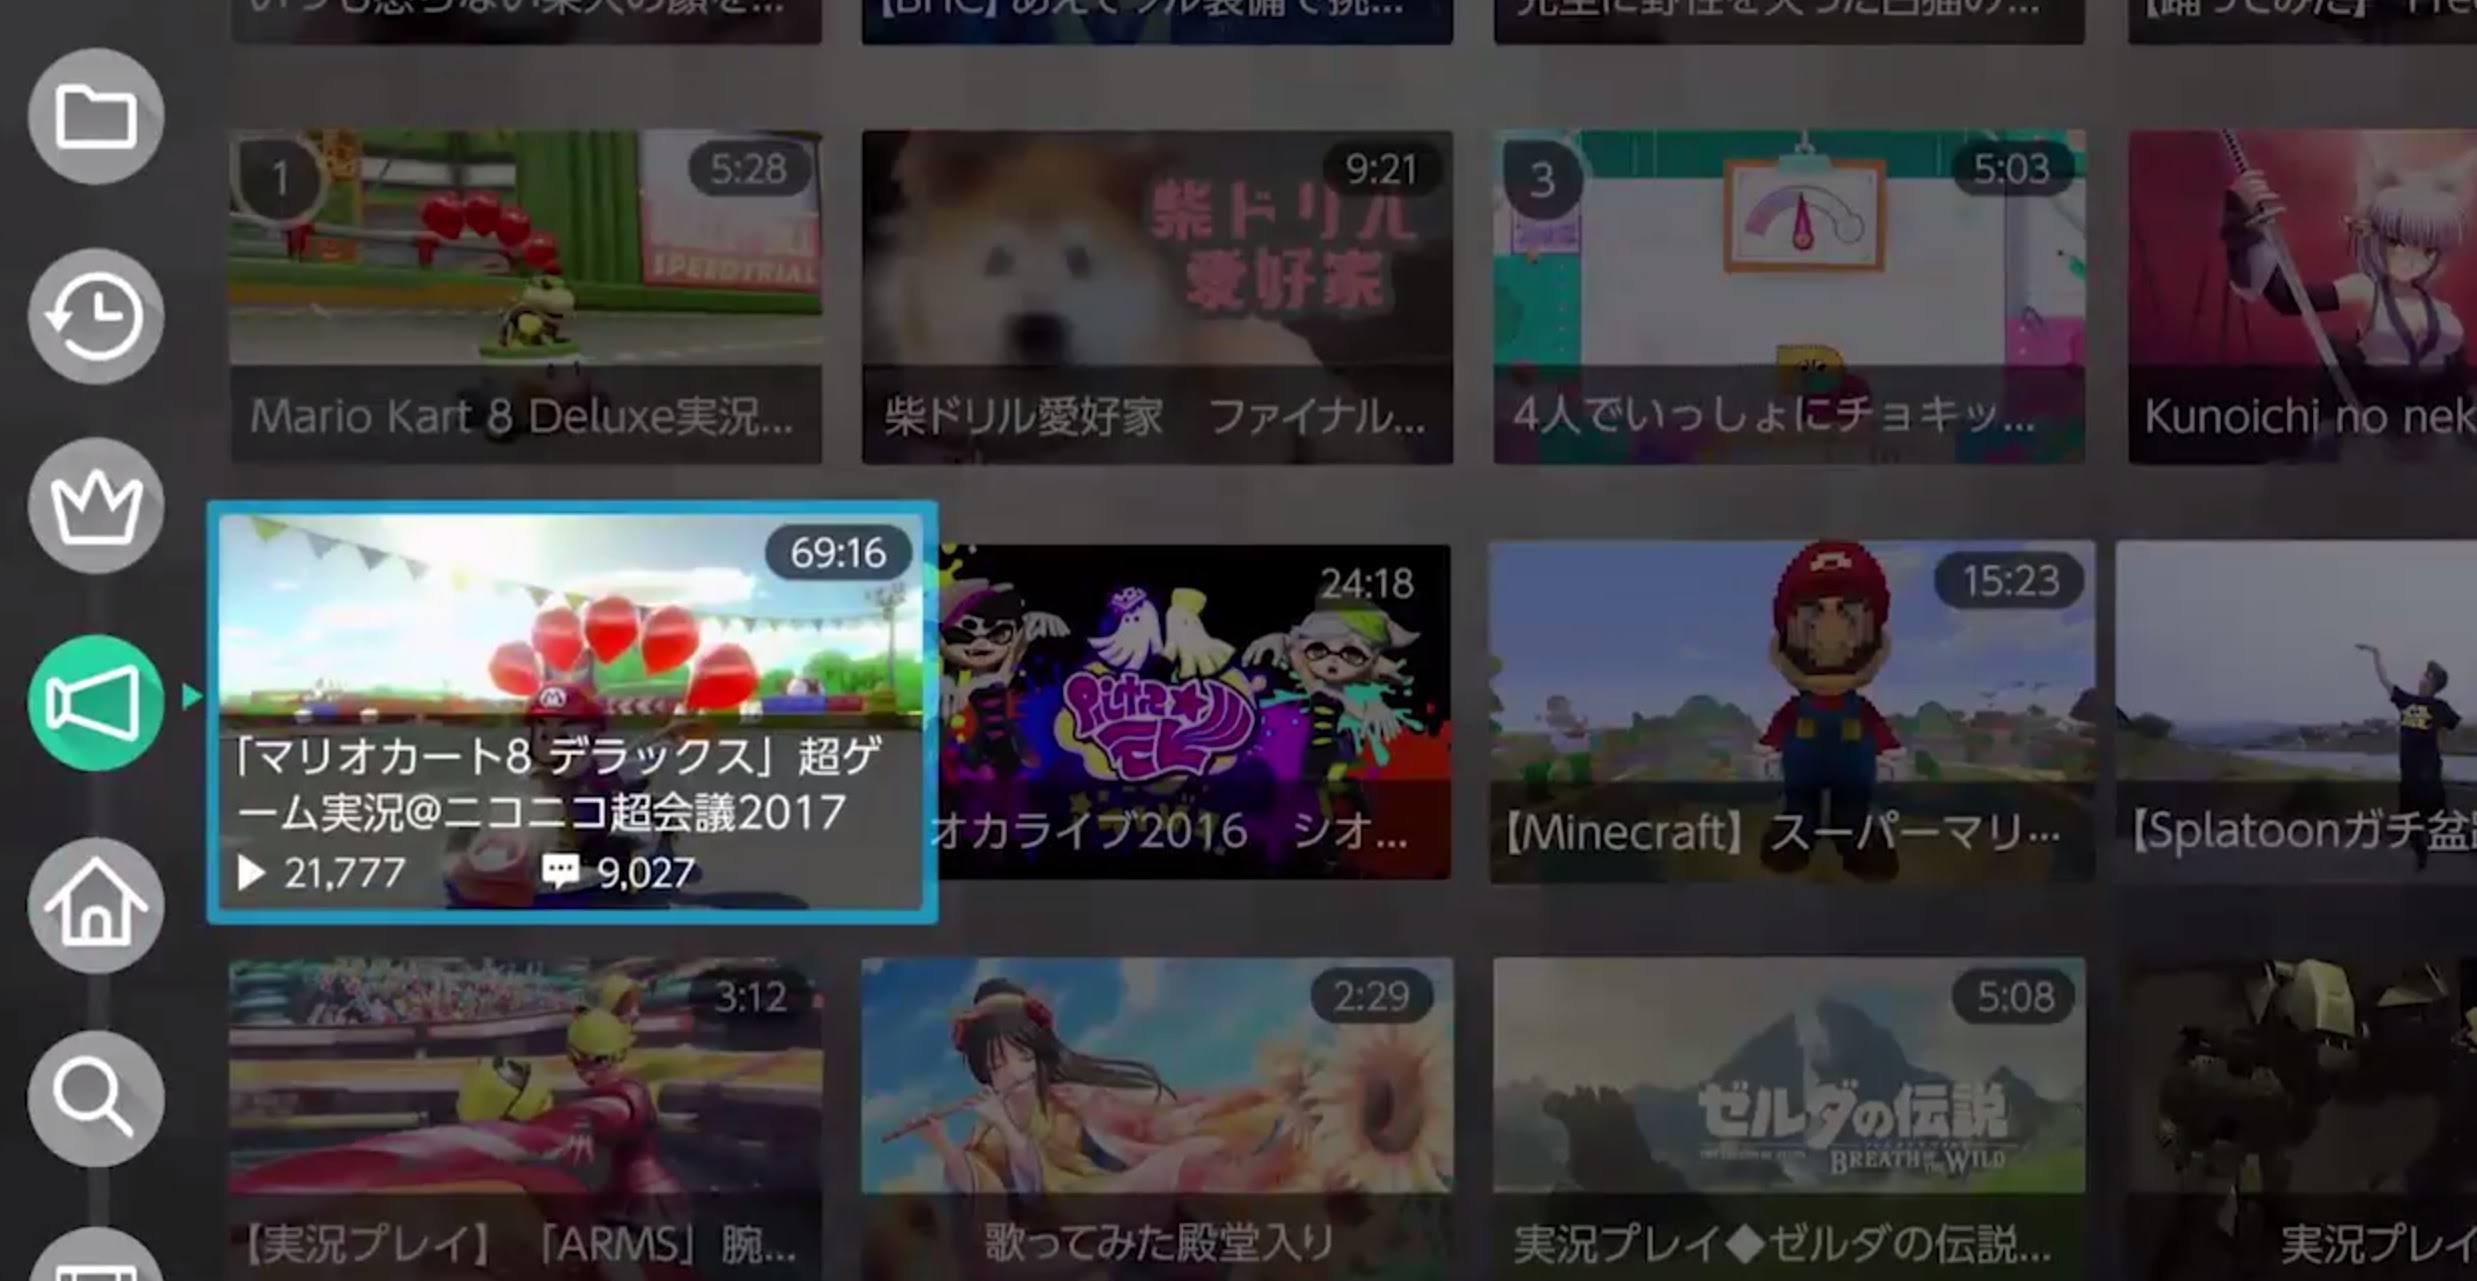 The Switch is finally getting apps, starting with NicoNico this week screenshot